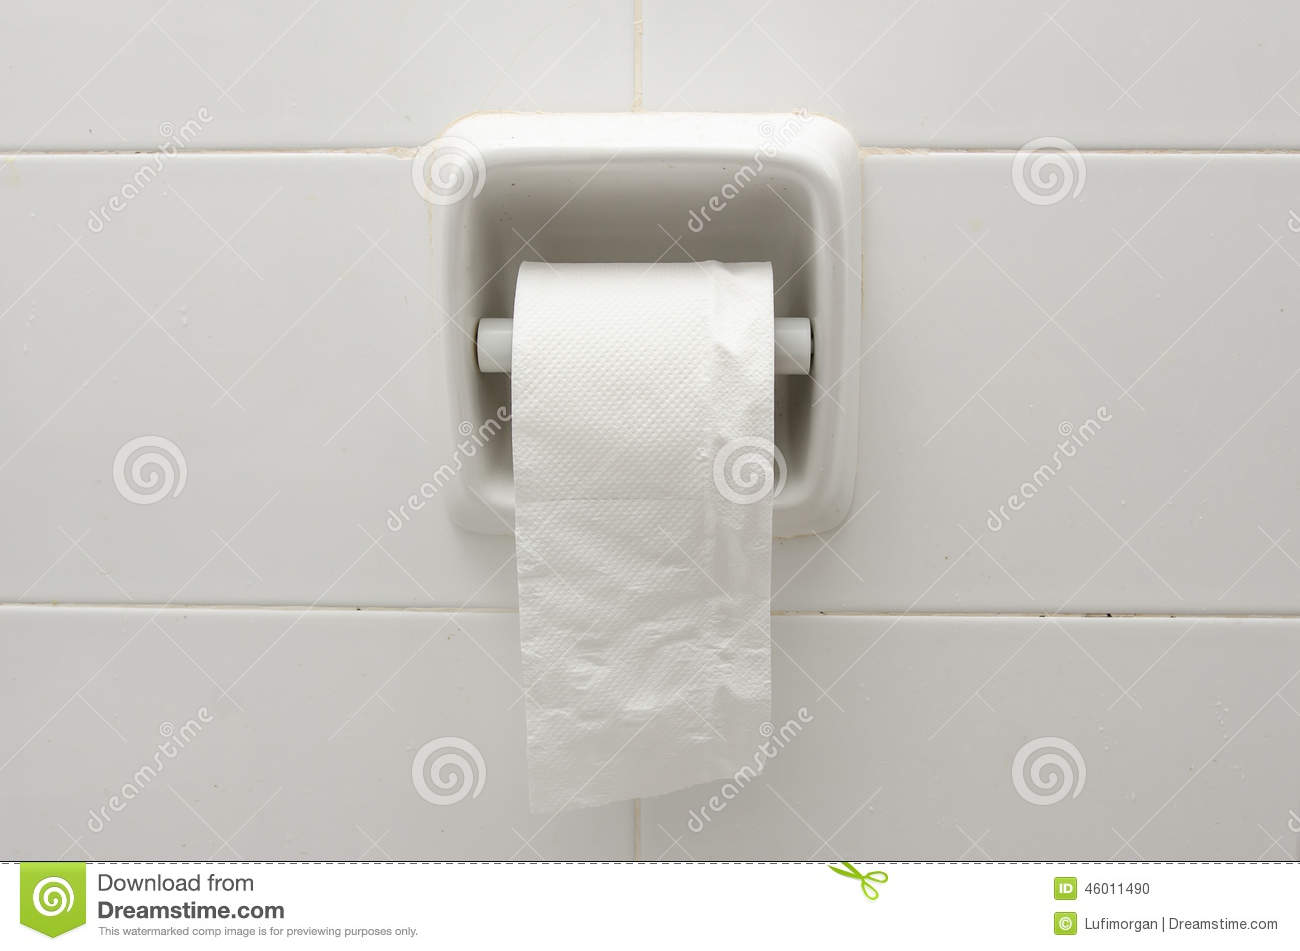 Toilet Paper Holder Stock Photo Image Of Mounted Water 46011490